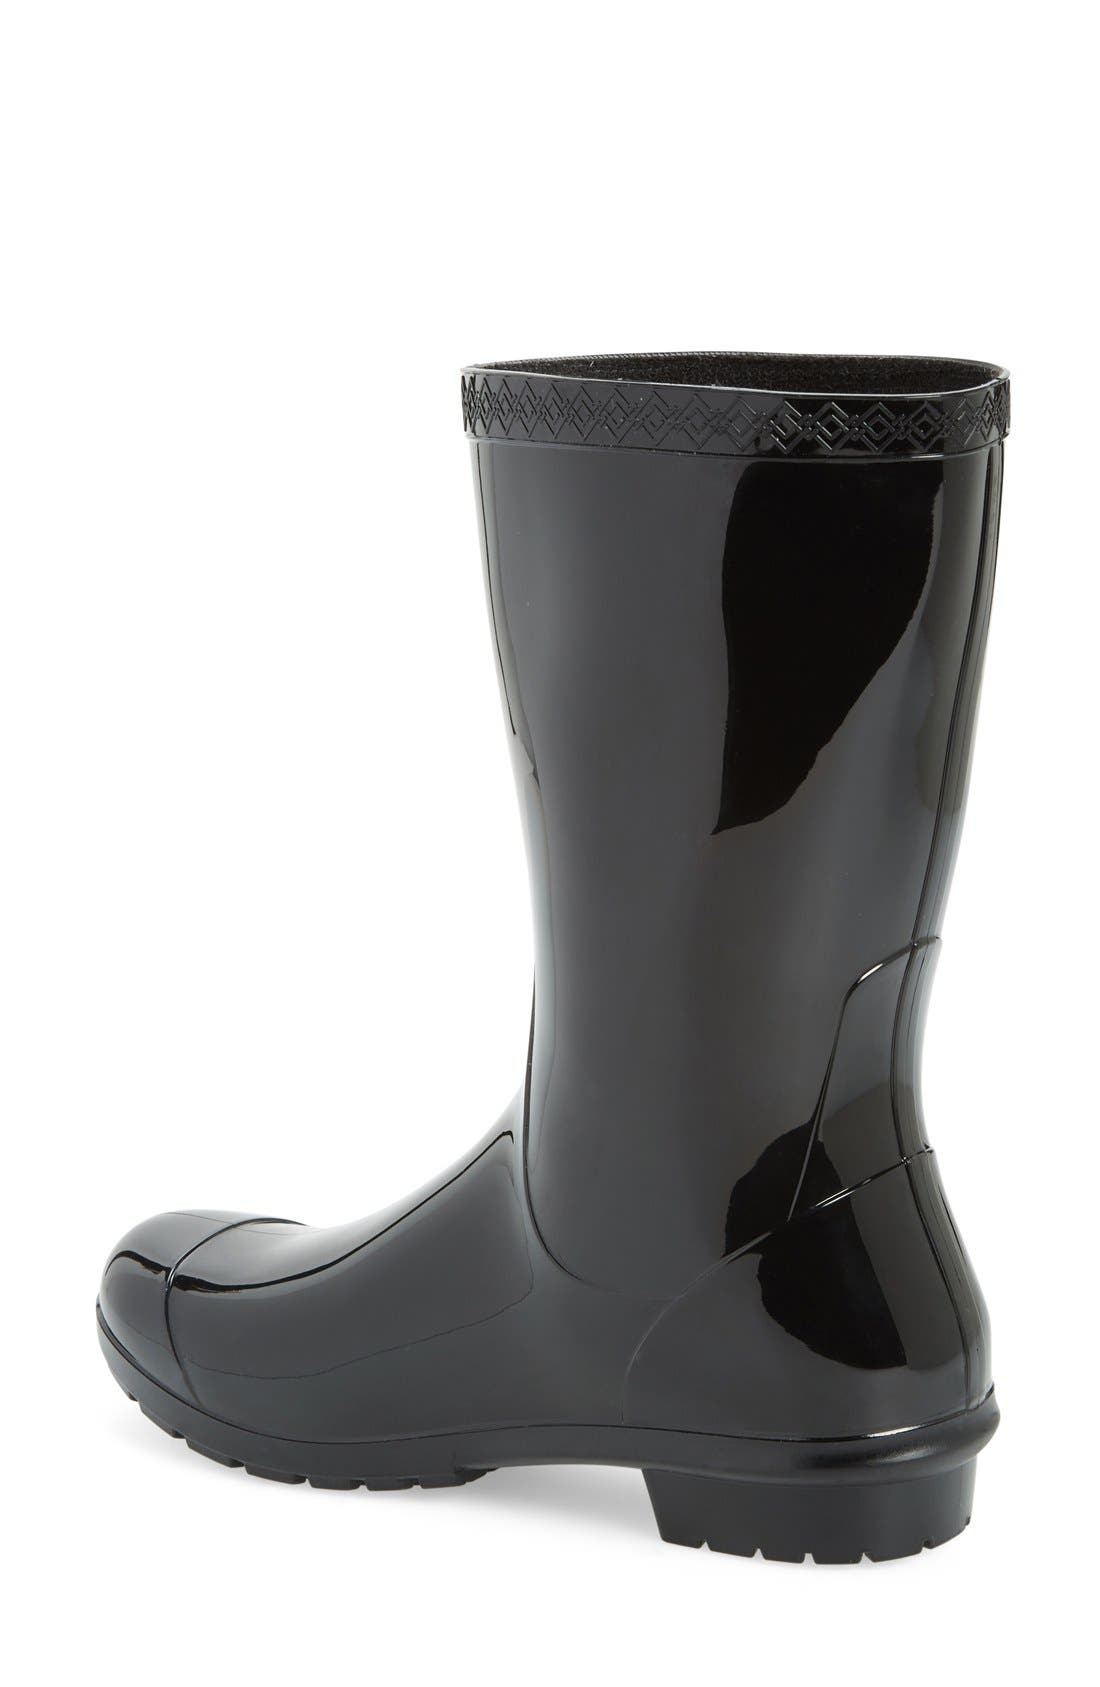 Sienna Rain Boot,                             Alternate thumbnail 2, color,                             BLACK